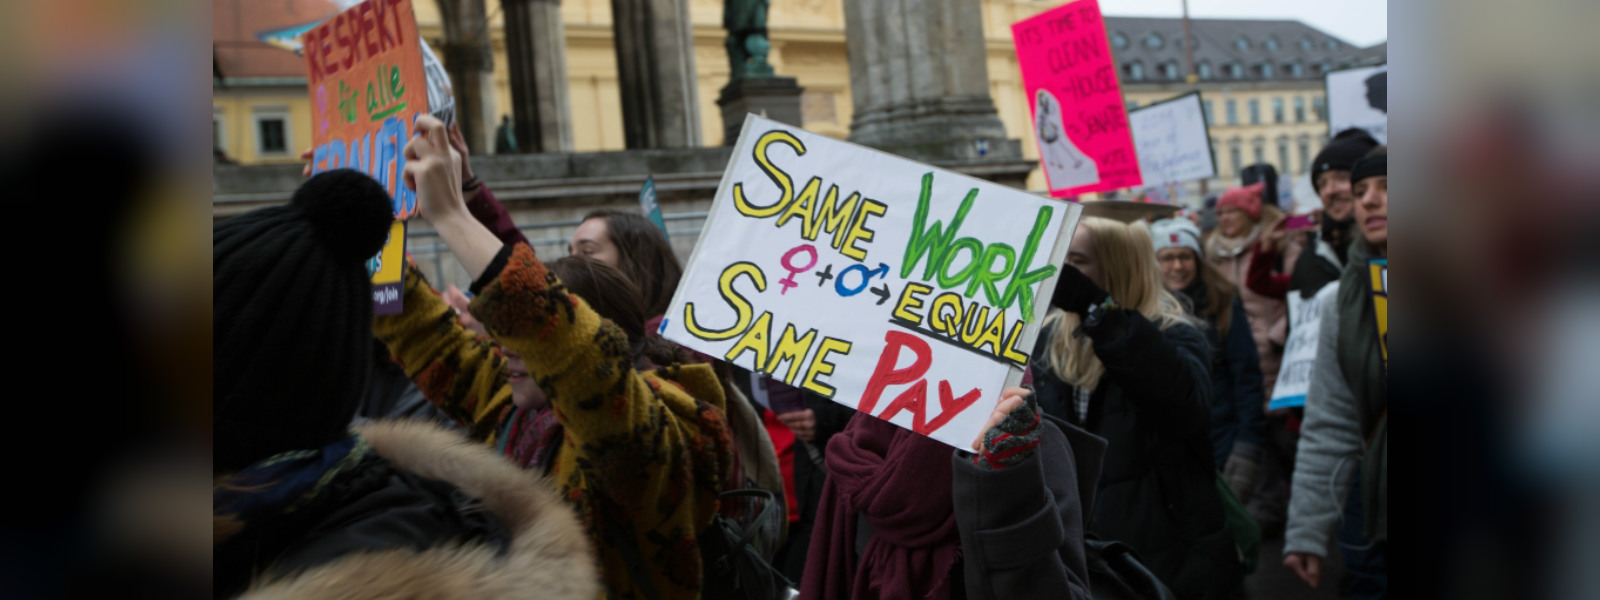 Swiss women to strike in call for equal pay and rights